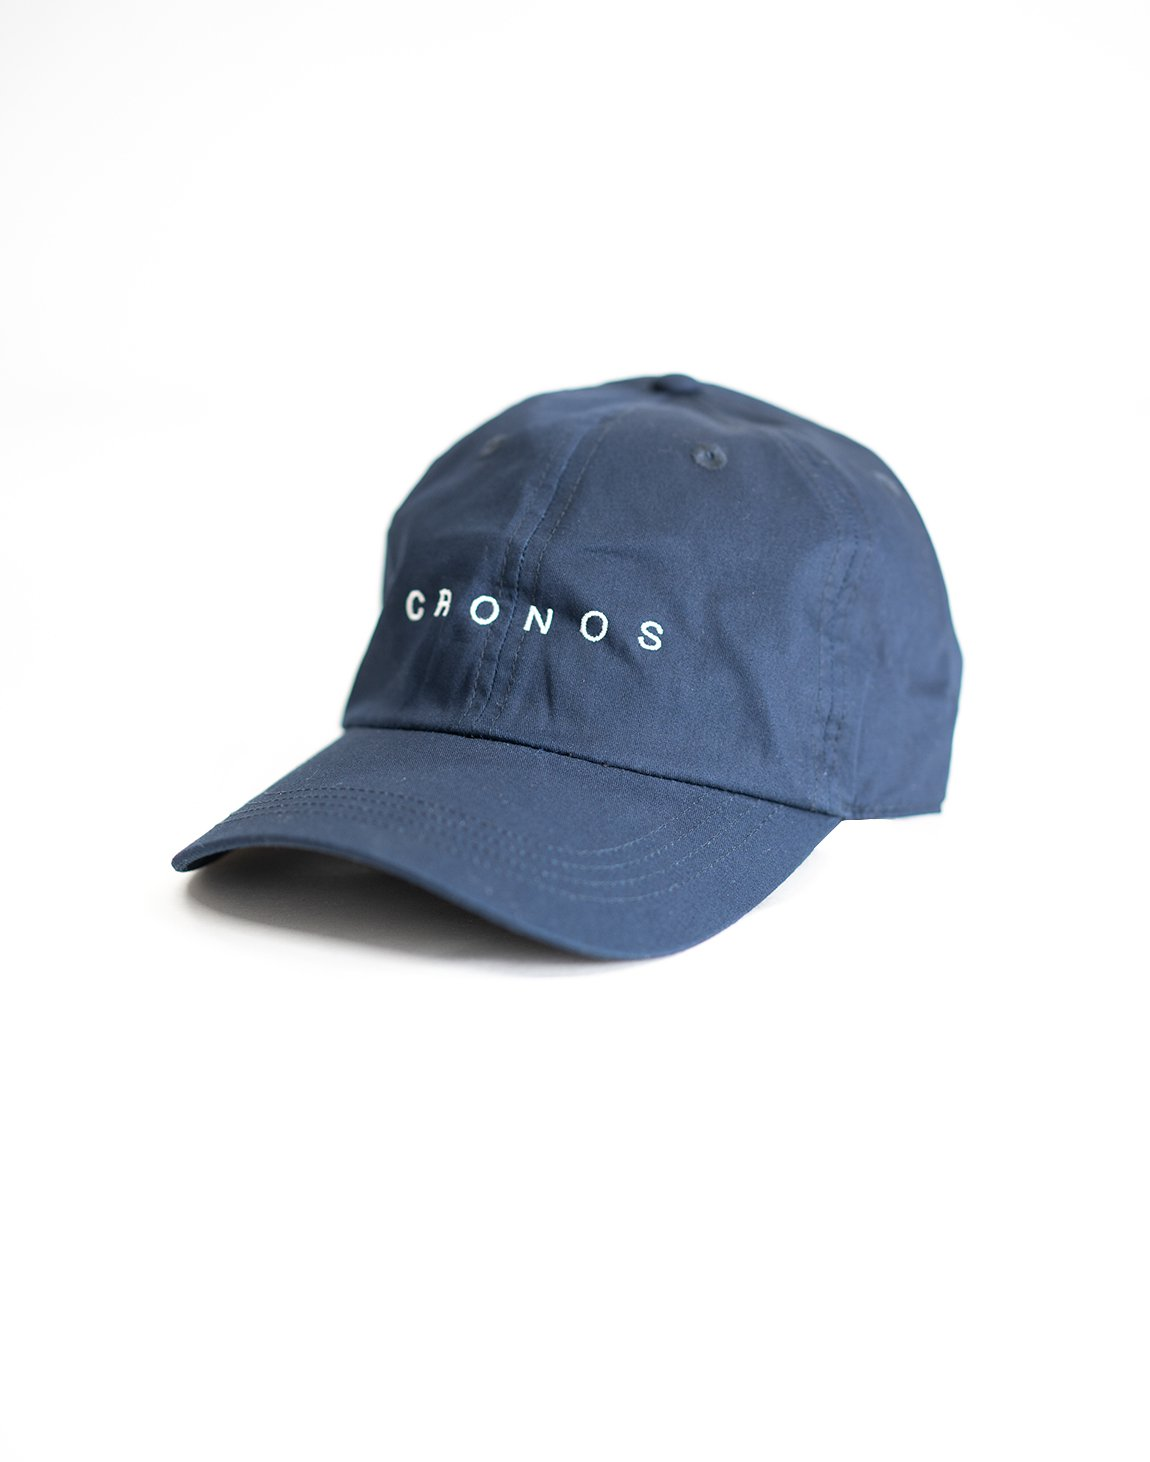 <img class='new_mark_img1' src='https://img.shop-pro.jp/img/new/icons1.gif' style='border:none;display:inline;margin:0px;padding:0px;width:auto;' />CRONOS LOGO CAP 【NAVY】